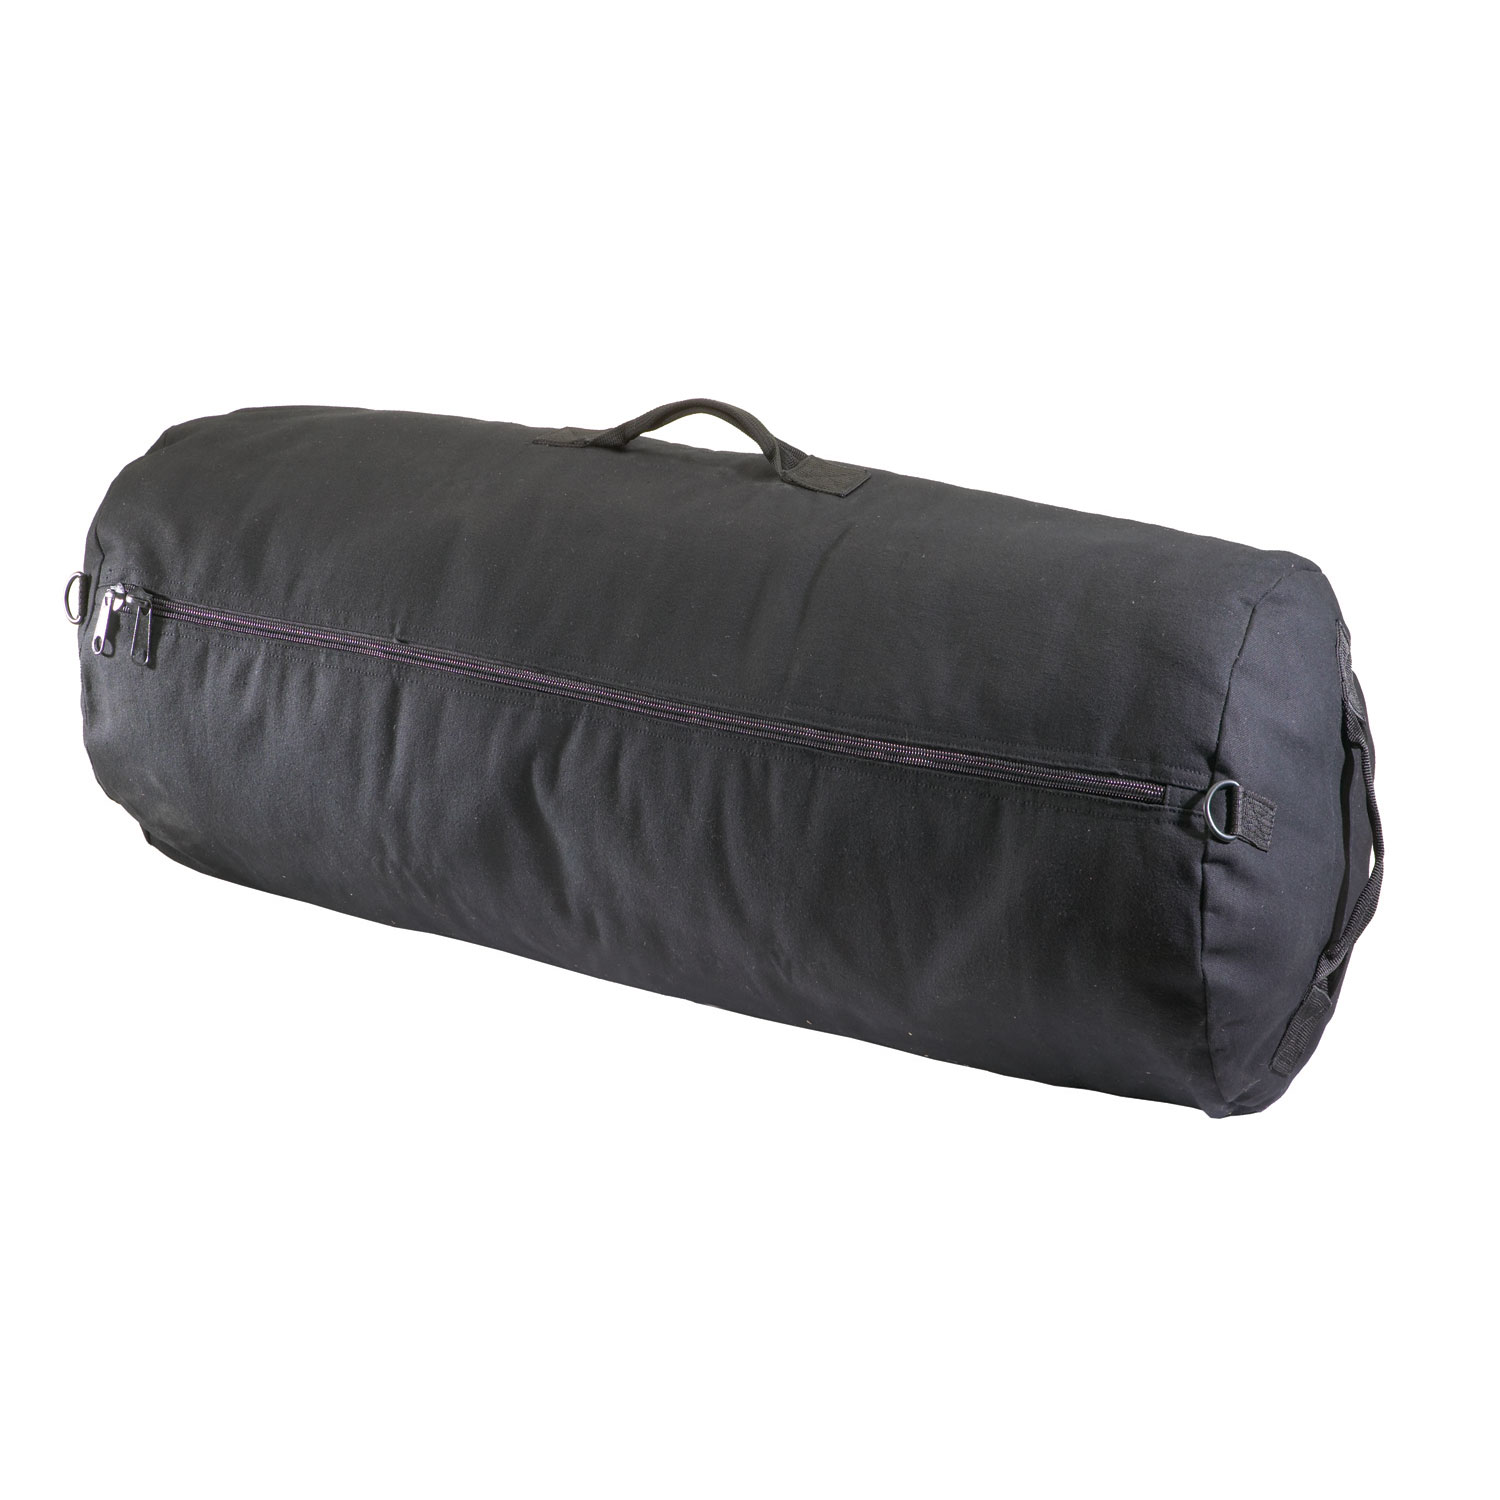 Texsport Zippered Durable PVC Material Canvas Outdoor Sports Duffle Bag, Black by Texsport